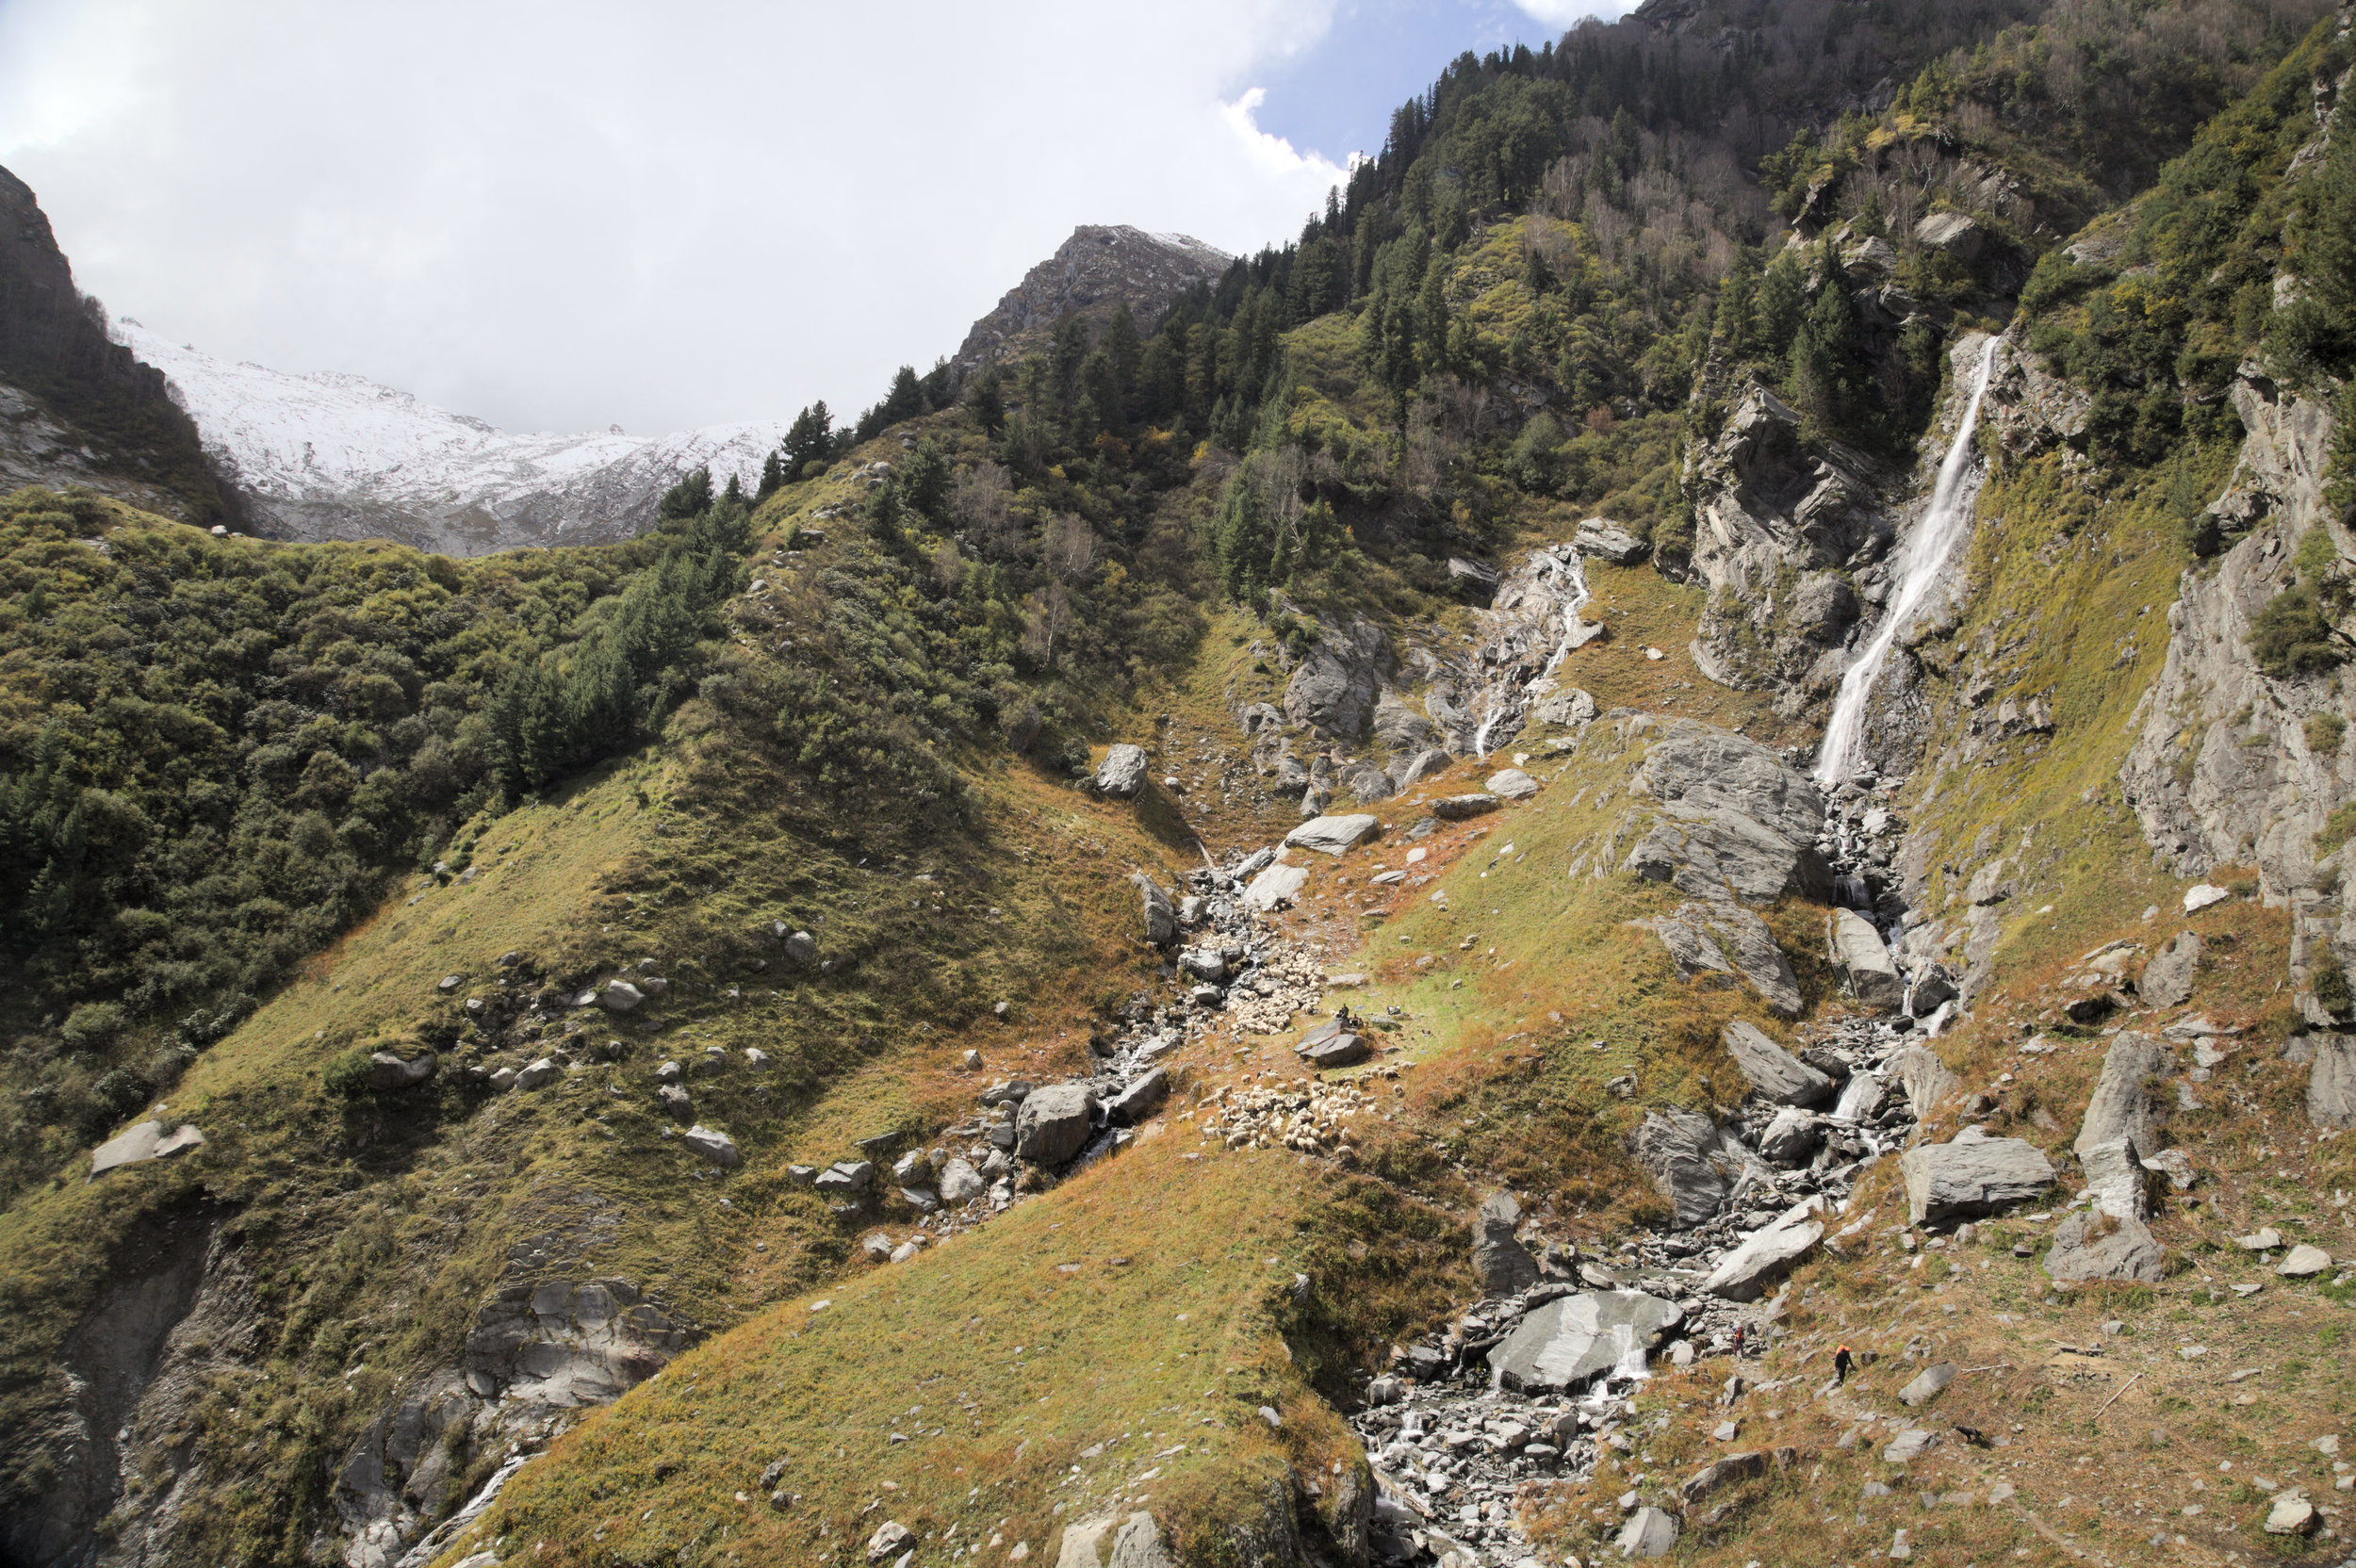 Gaddis and their flock on their way towards to Indrahar Pass, the last pass in the Himalayas before reaching the southern plains. It is October and snow has already fallen on the pass.